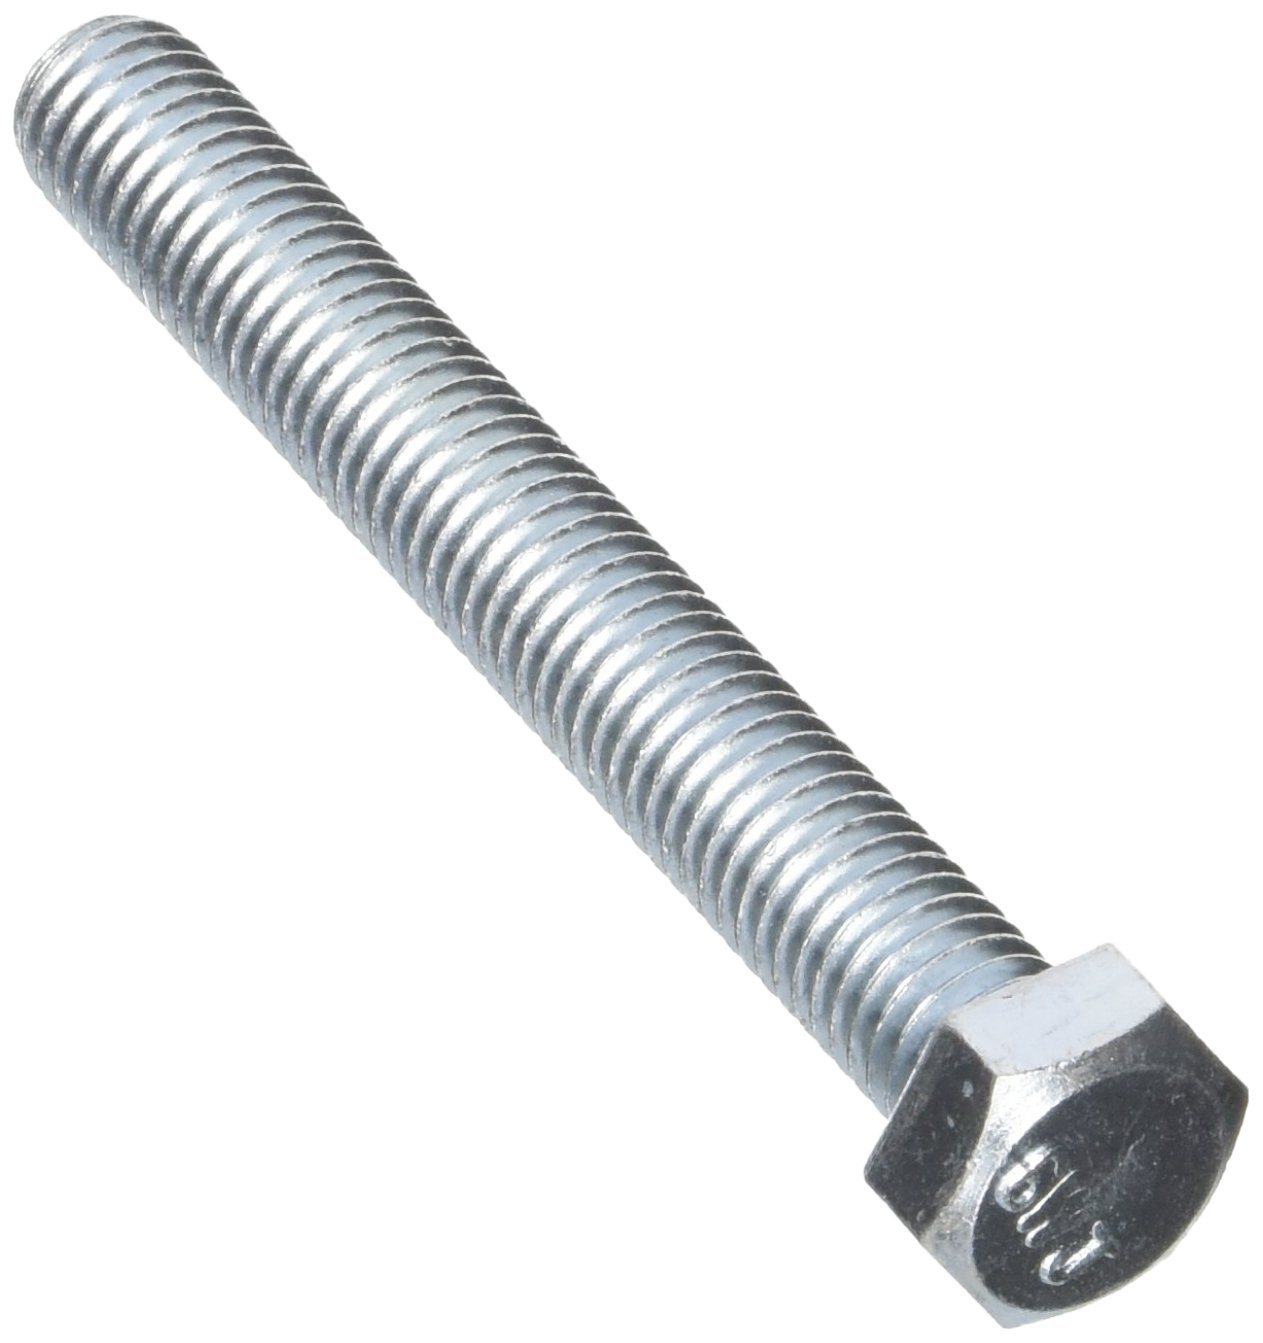 Piece-10 5//16-18 x 4 Hard-to-Find Fastener 014973244118 Full Thread Hex Tap Bolts